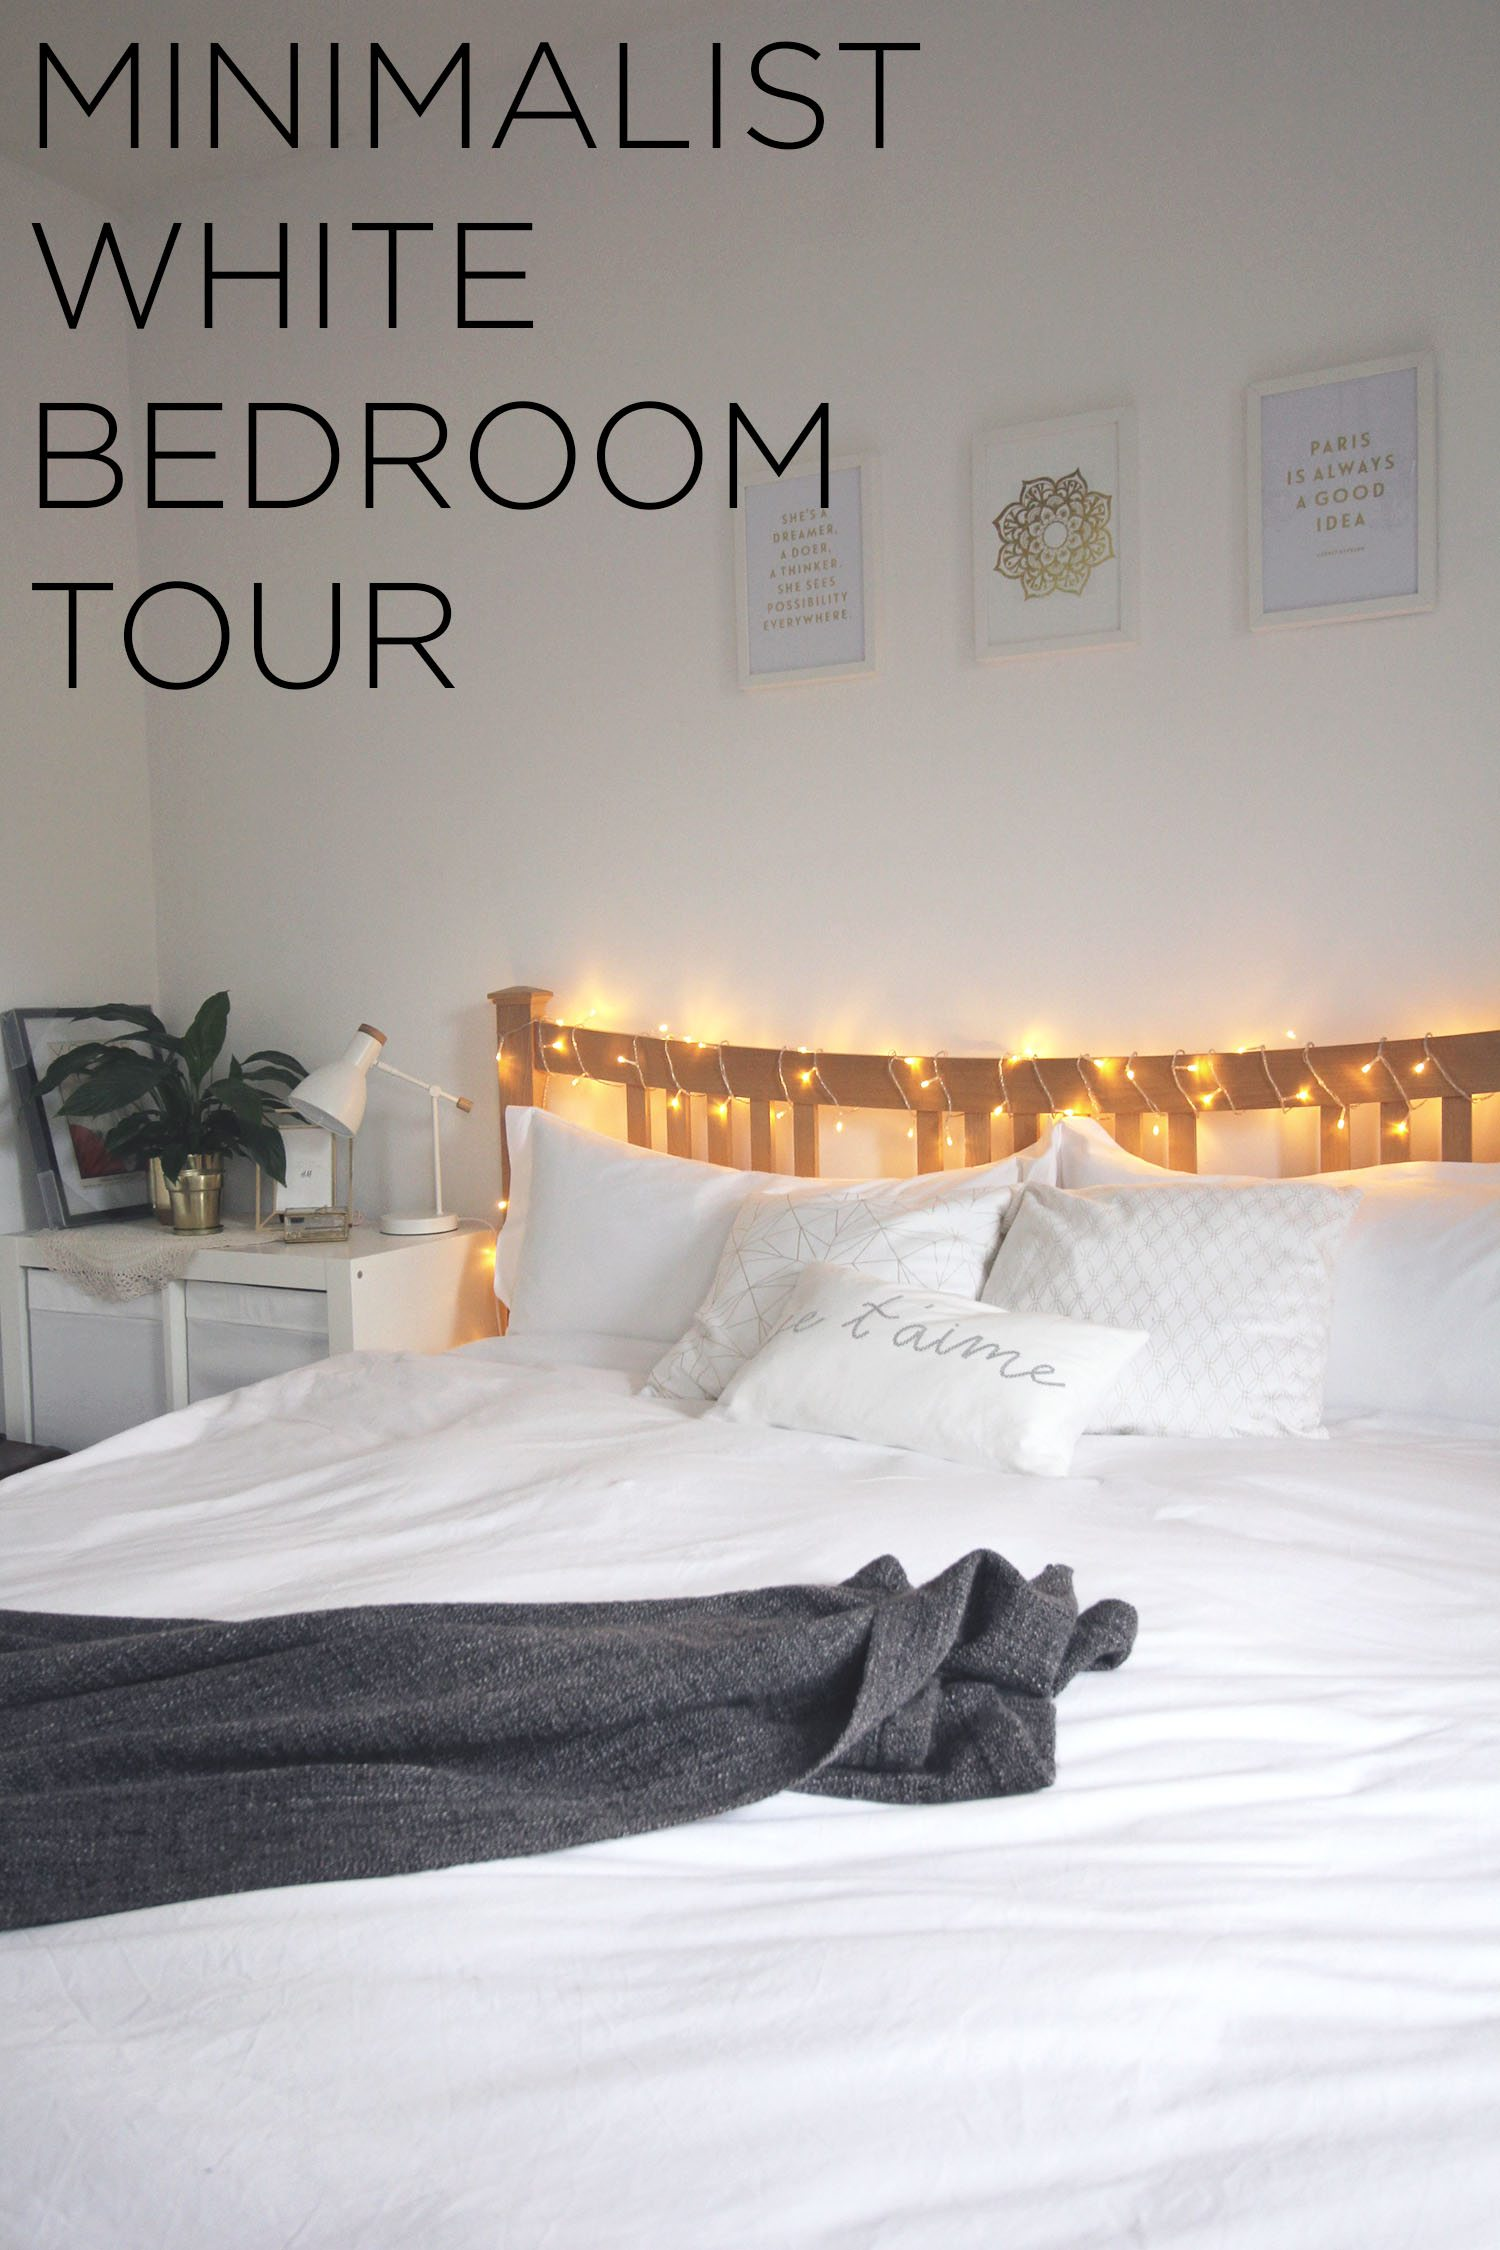 minimalist-white-bedroom-tour